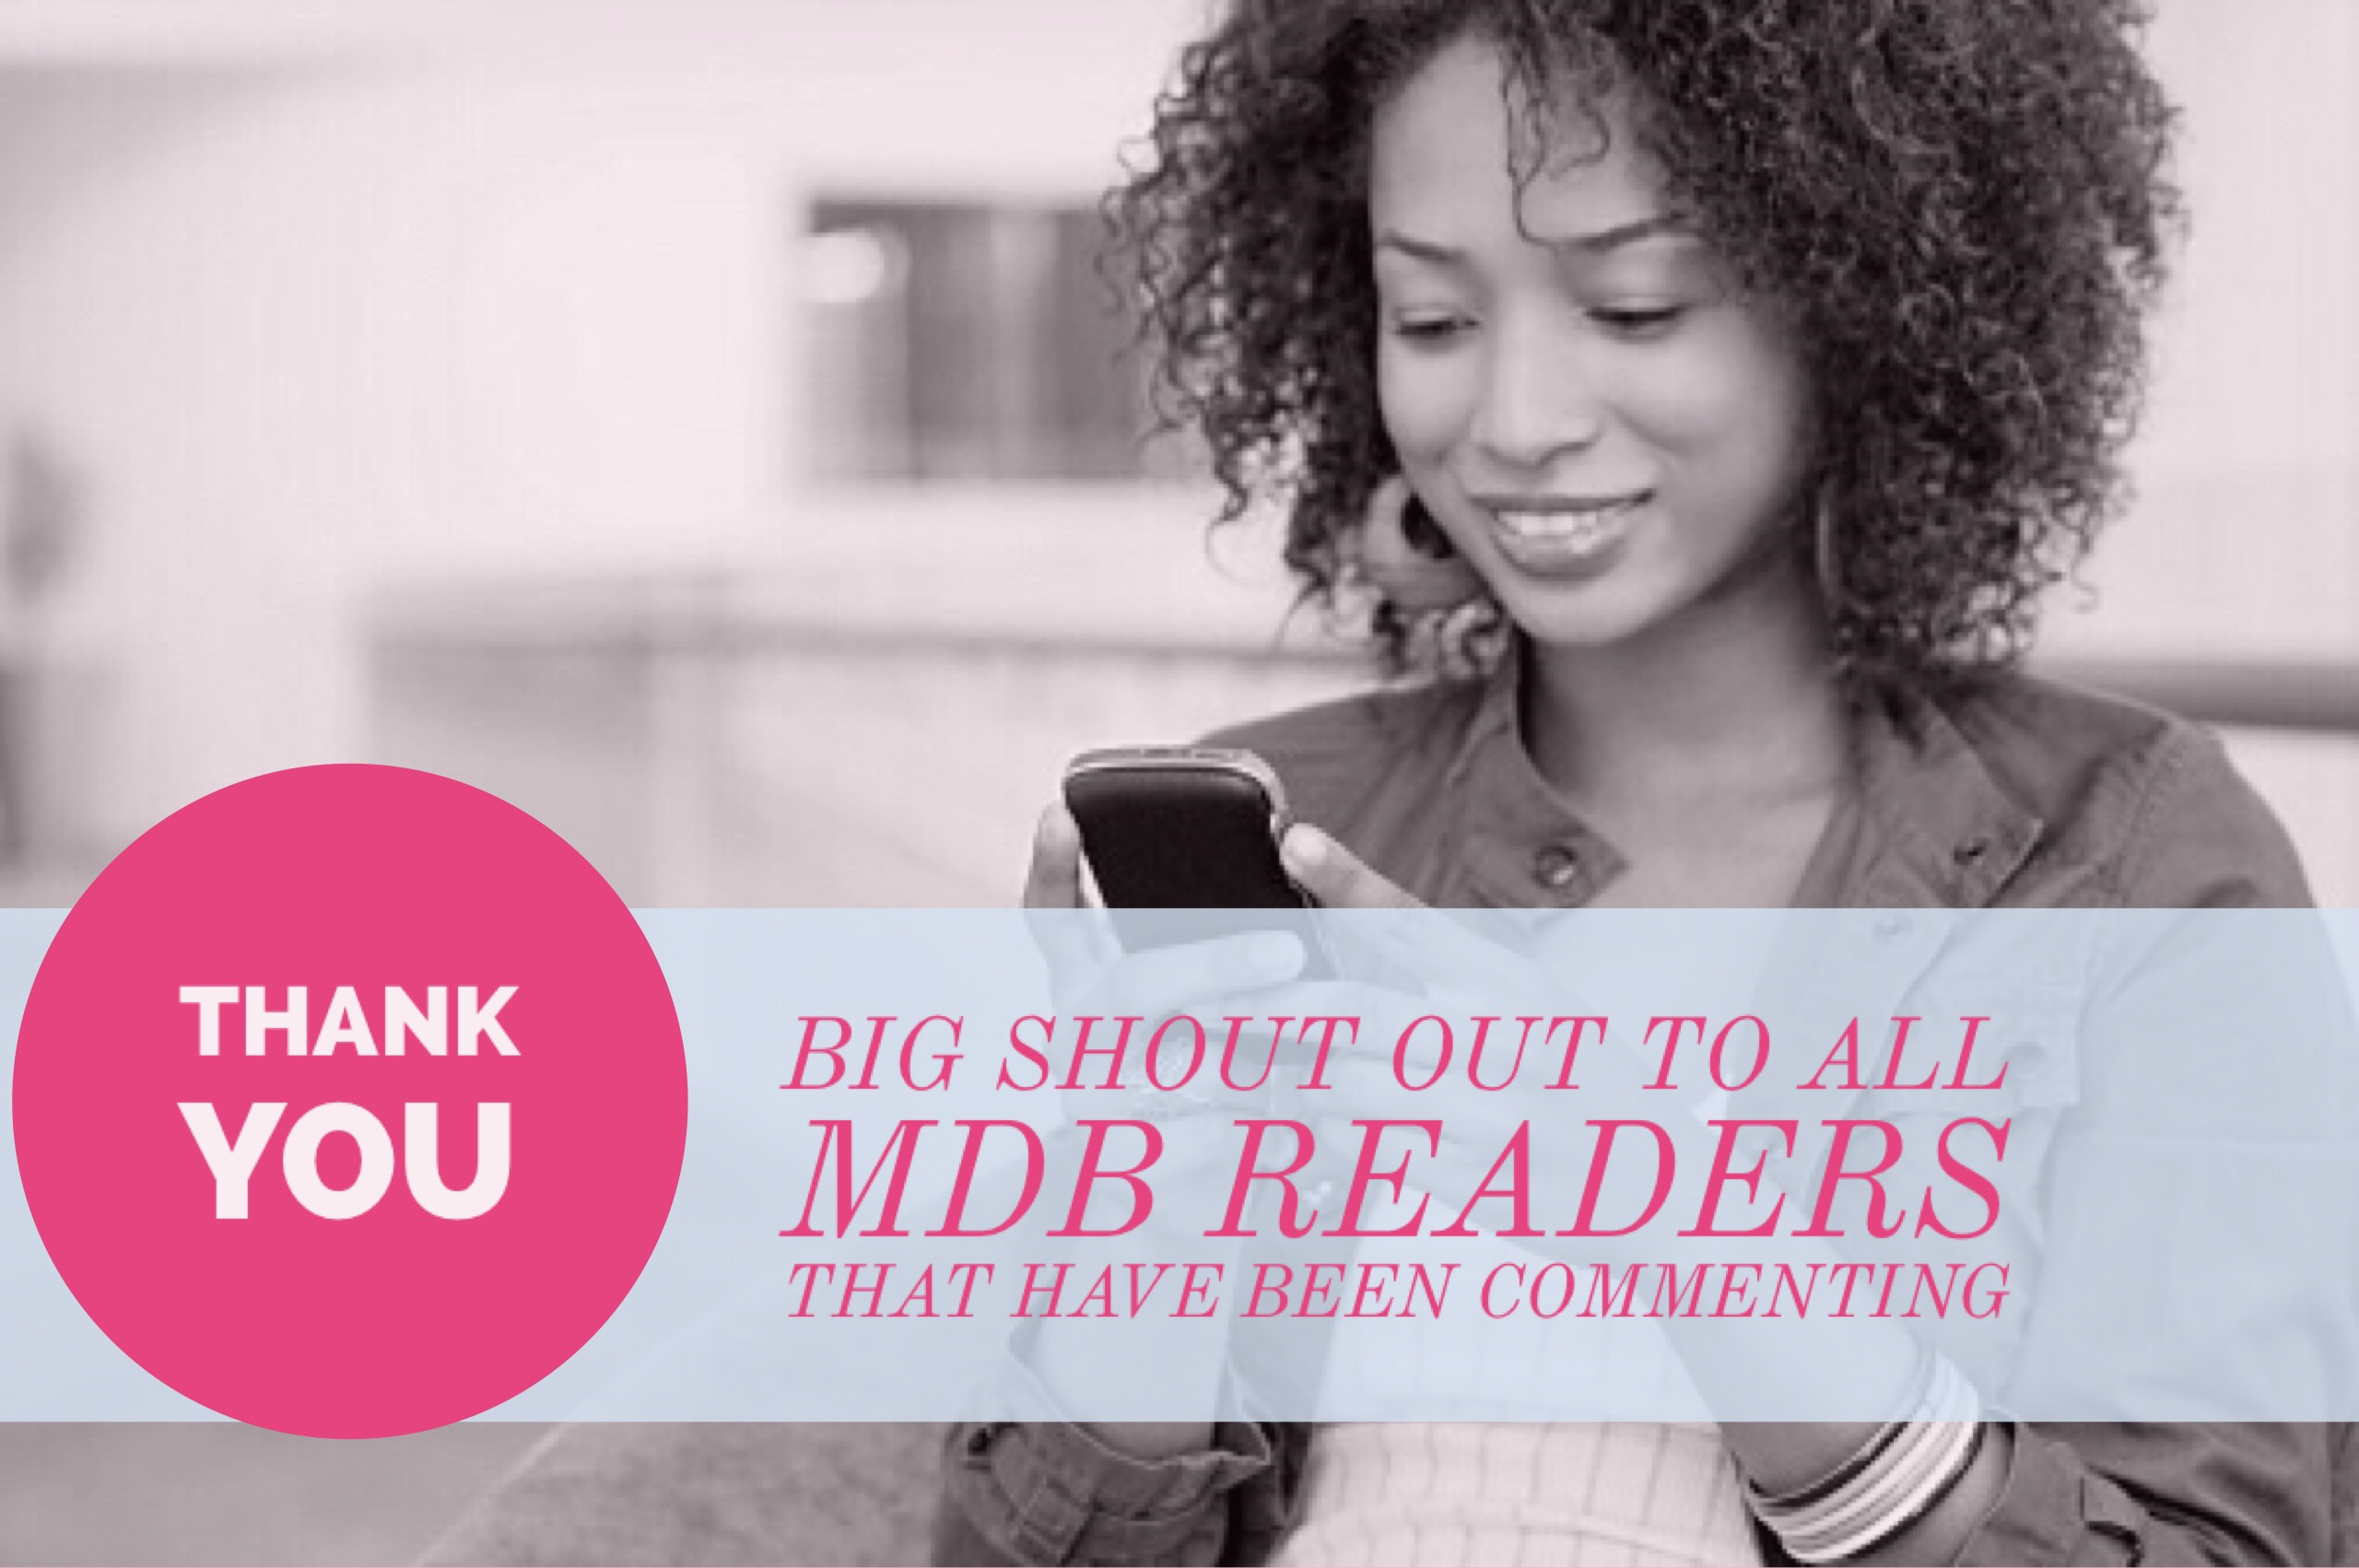 Friday Blog Reader Appreciation